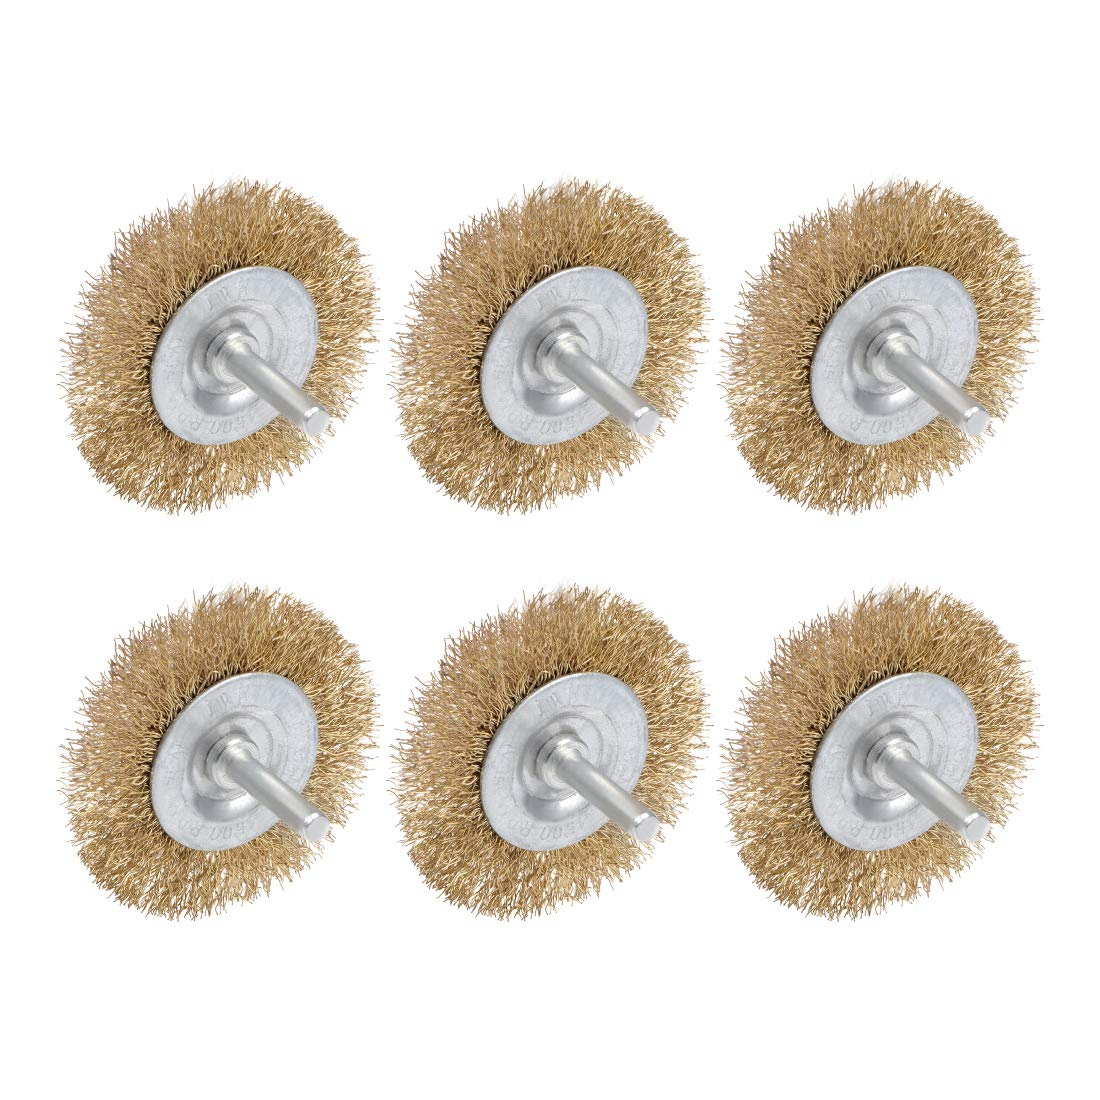 uxcell Wire Wheel Brush with Shank Bench Copper Plated Crimped Steel 2-1//2Inch Wheel 0.012-inch Wire Dia 6 Pcs